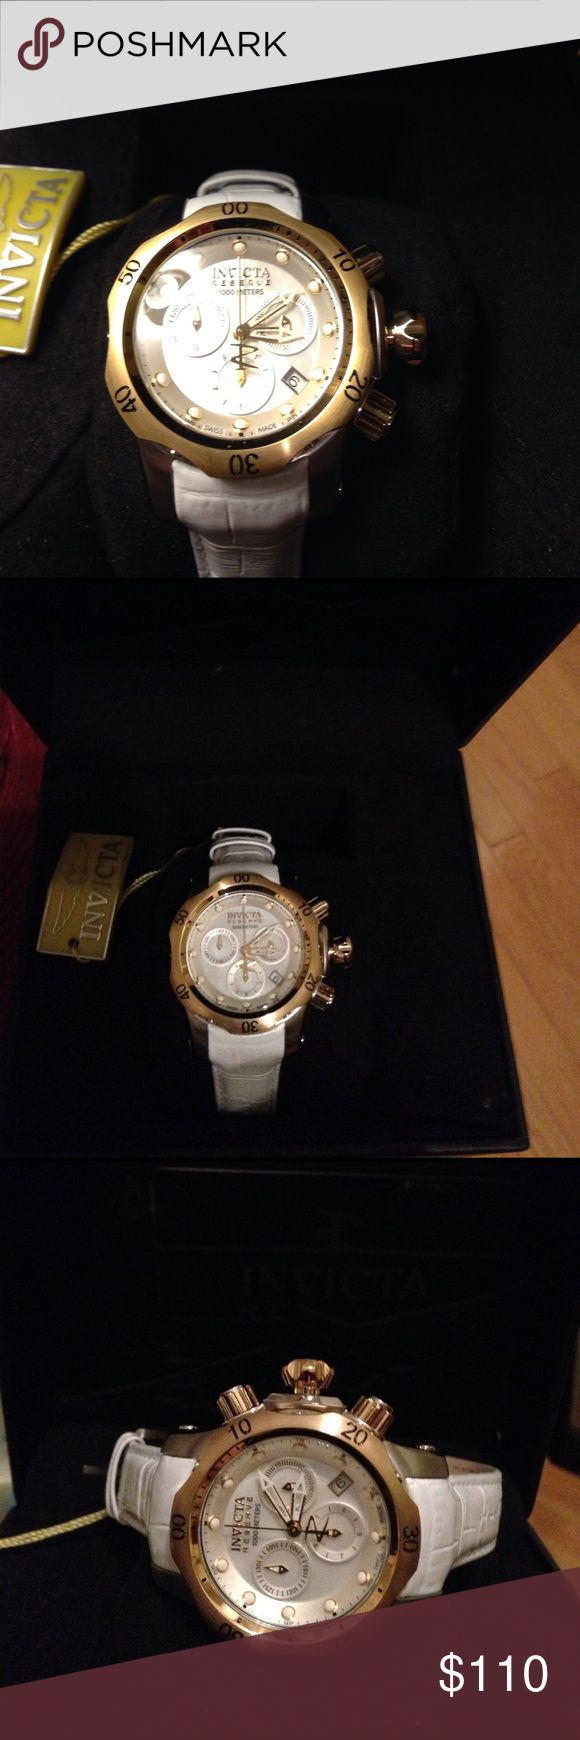 Invicta Watch Unbelievable woman's Invicta Reserve watch. BNWT. Very expensive brand unmatched in quality. White leather band. All paperwork and original box included. One of my best deals in my closet!! Enjoy!! Invicta Jewelry